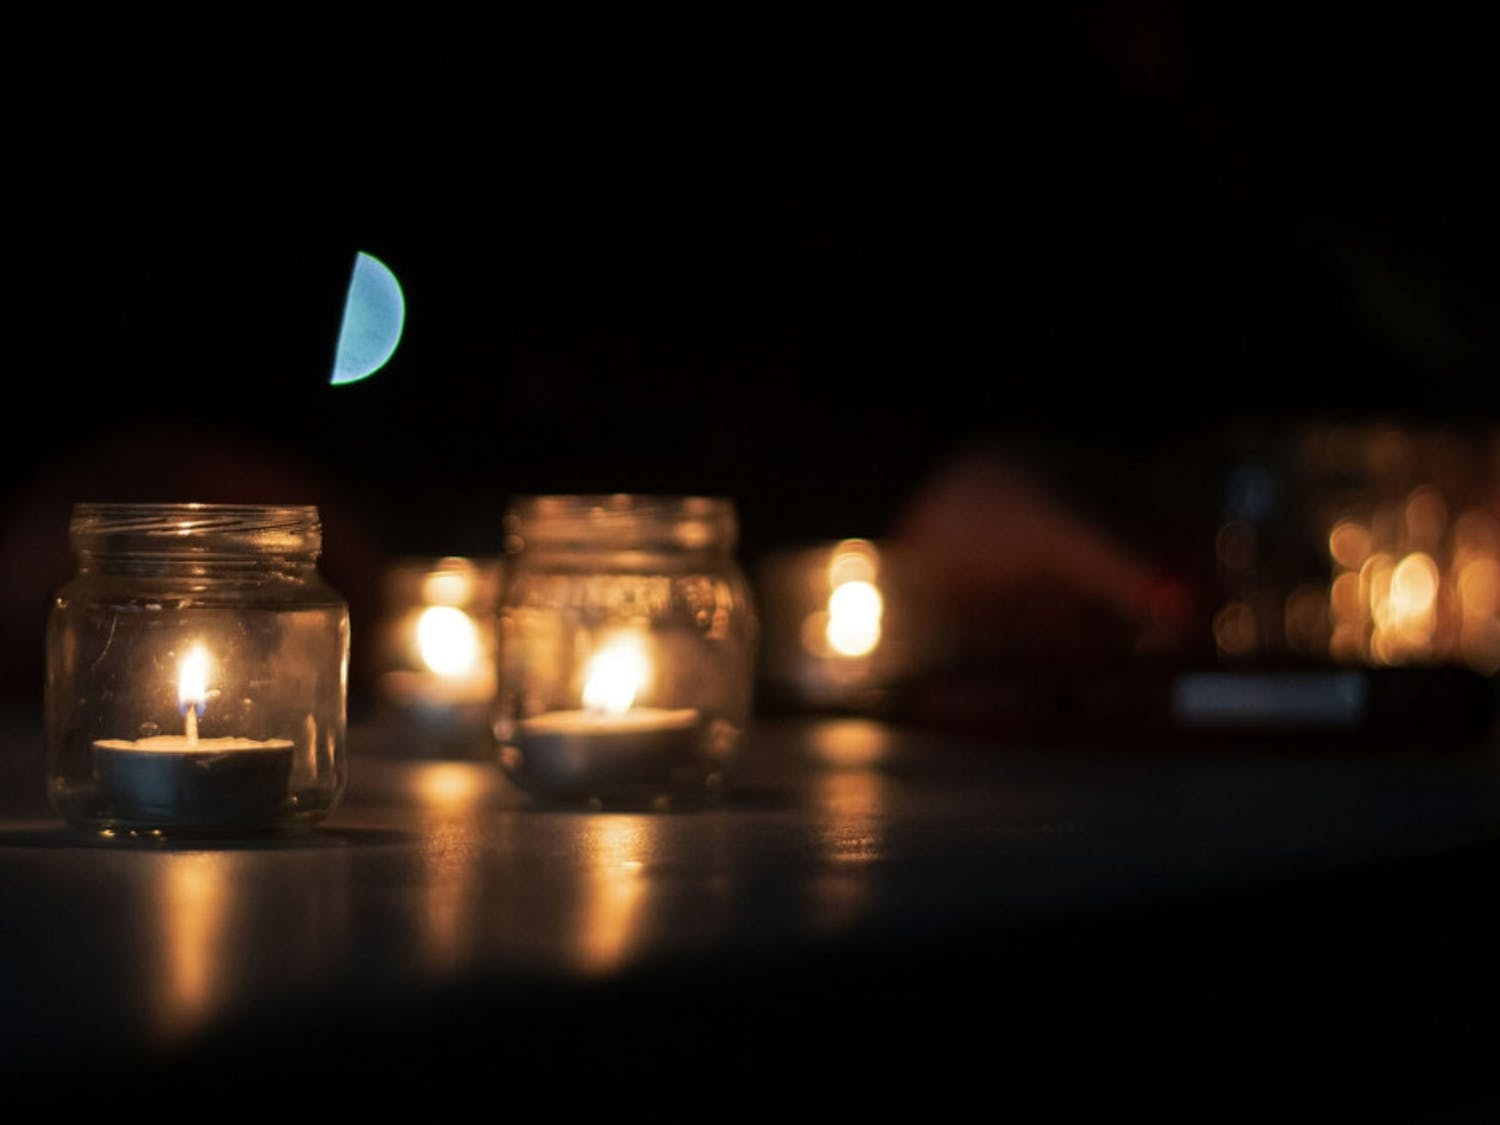 Volunteers light candles for the vigil during the Transgender Day of Remembrance at Depot Park Wednesday night.